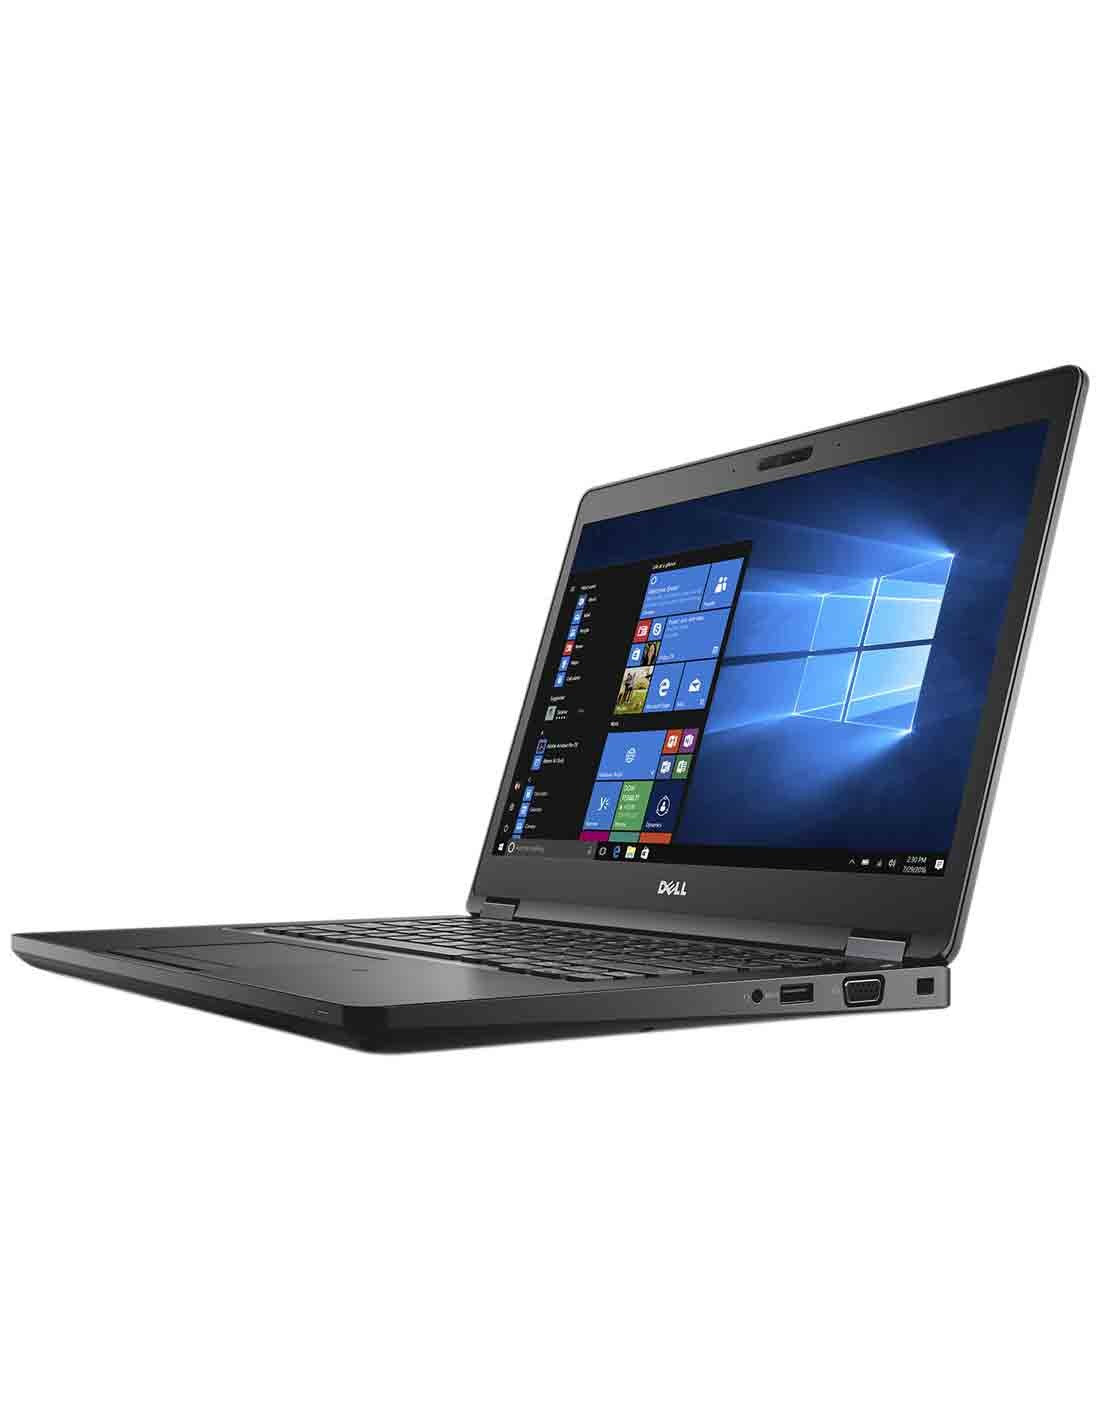 Dell Latitude 5480 Notebook i7 images and photos in Dubai computer store